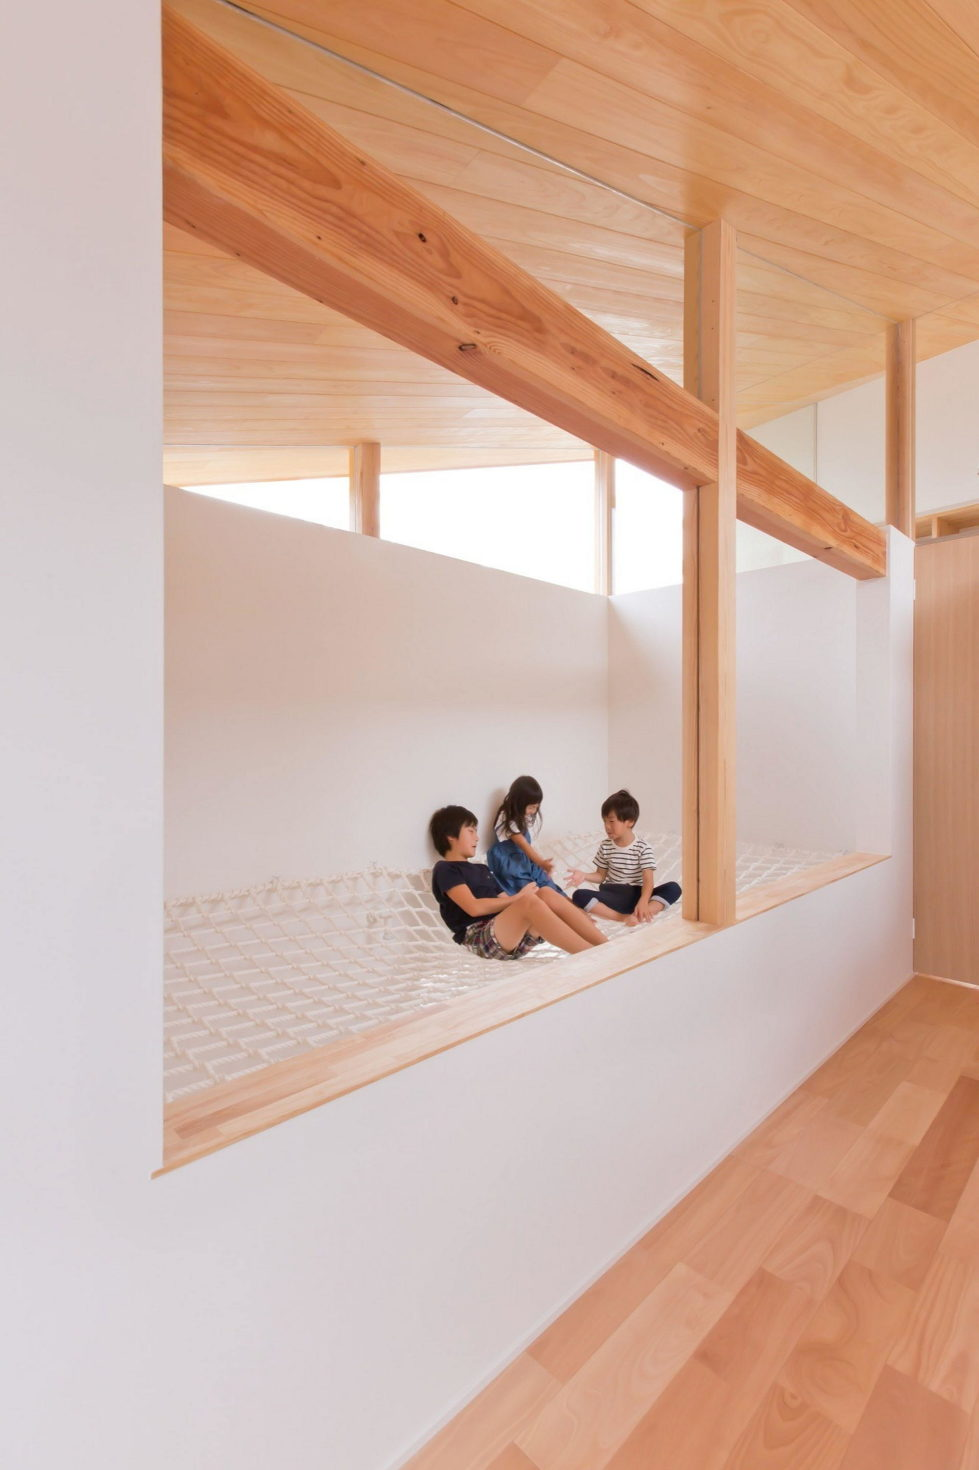 The House In Nipponese Minimalism In Kyoto By ALTS Design Office 3